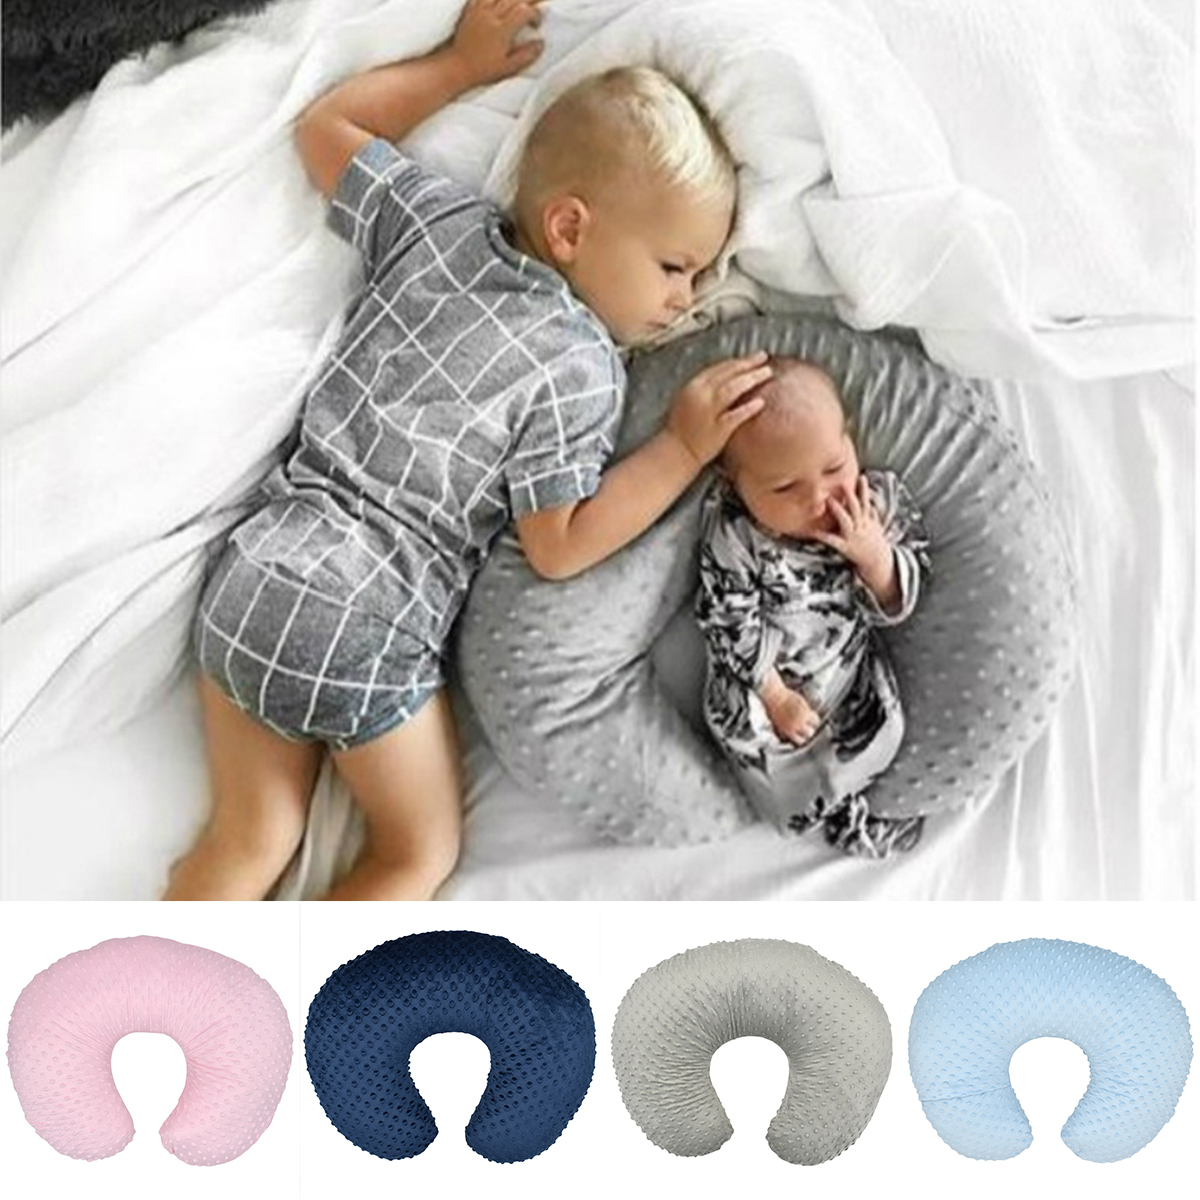 2019 New Baby U-Shaped Breastfeeding Pillow Nursing Pillow Cover Soft Slipcover Breastfeeding Cushion Cover Baby Shower Gift